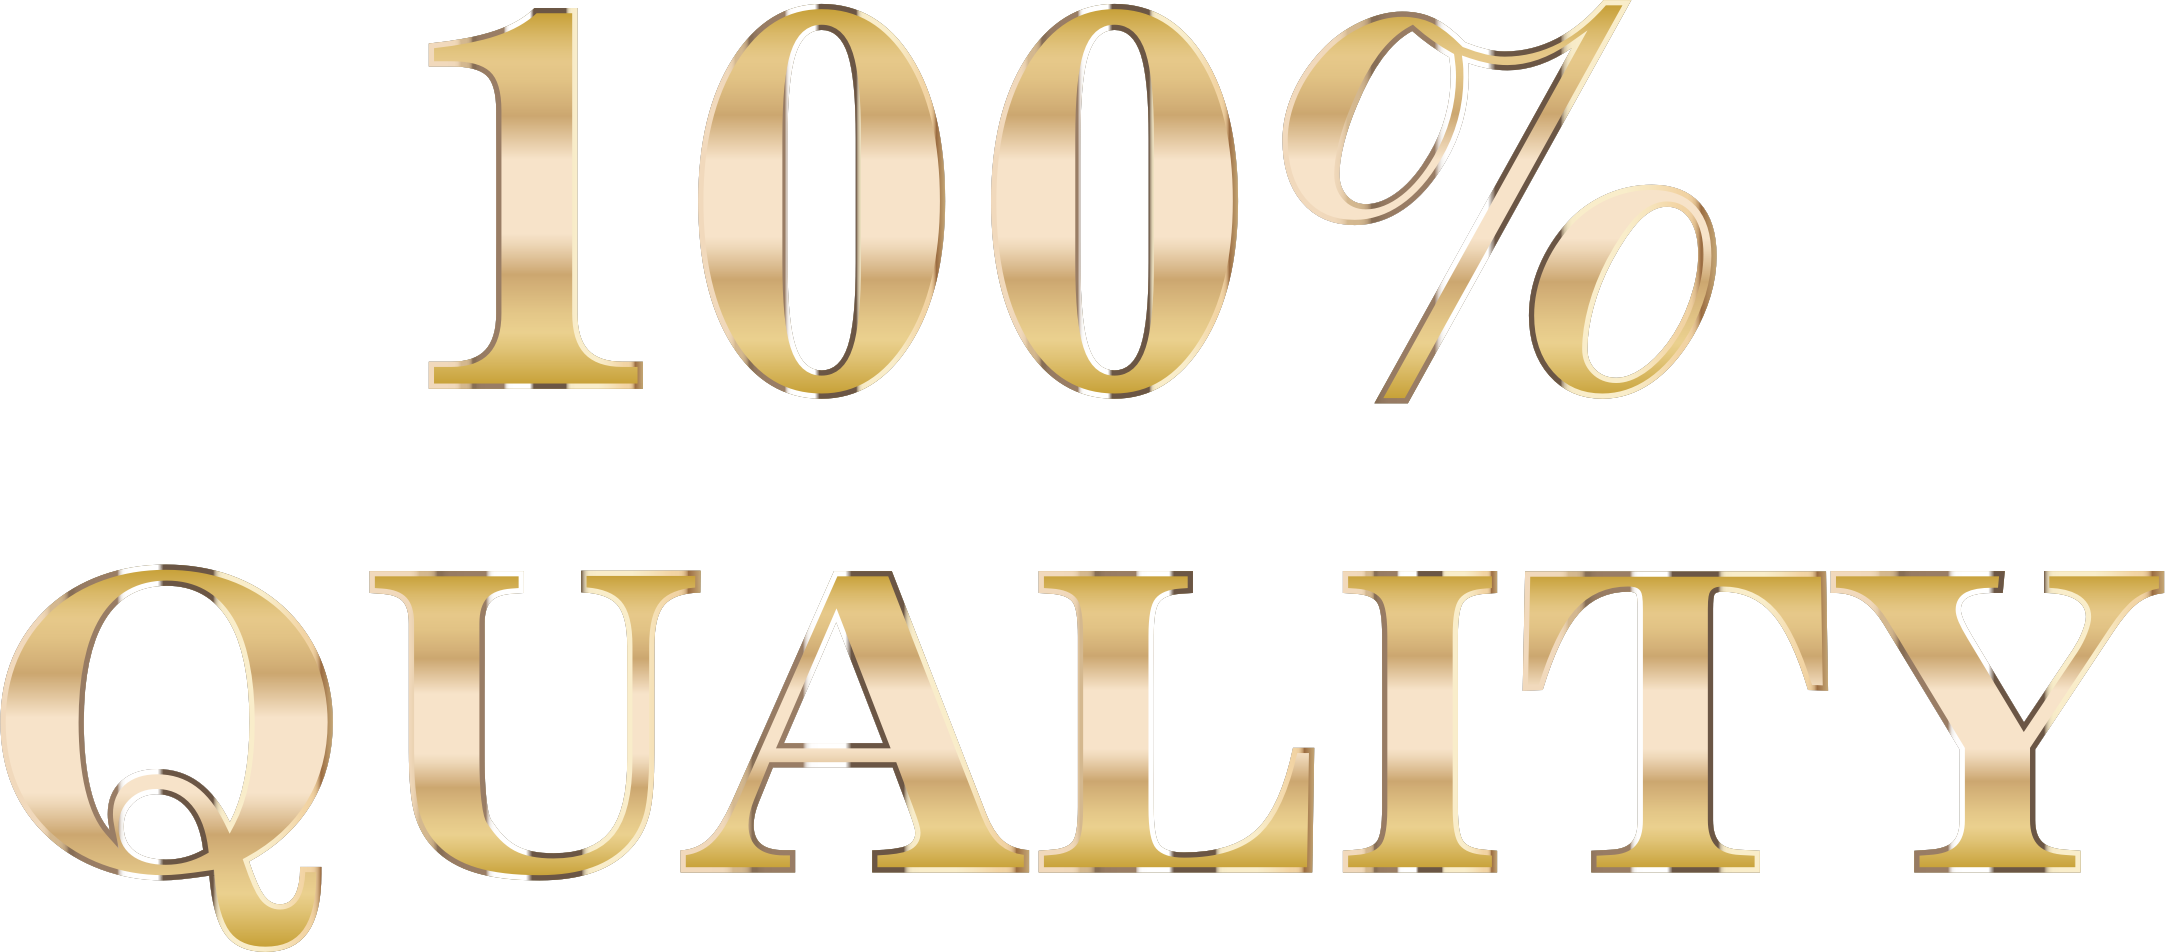 percent quality typography. 100 clipart transparent background